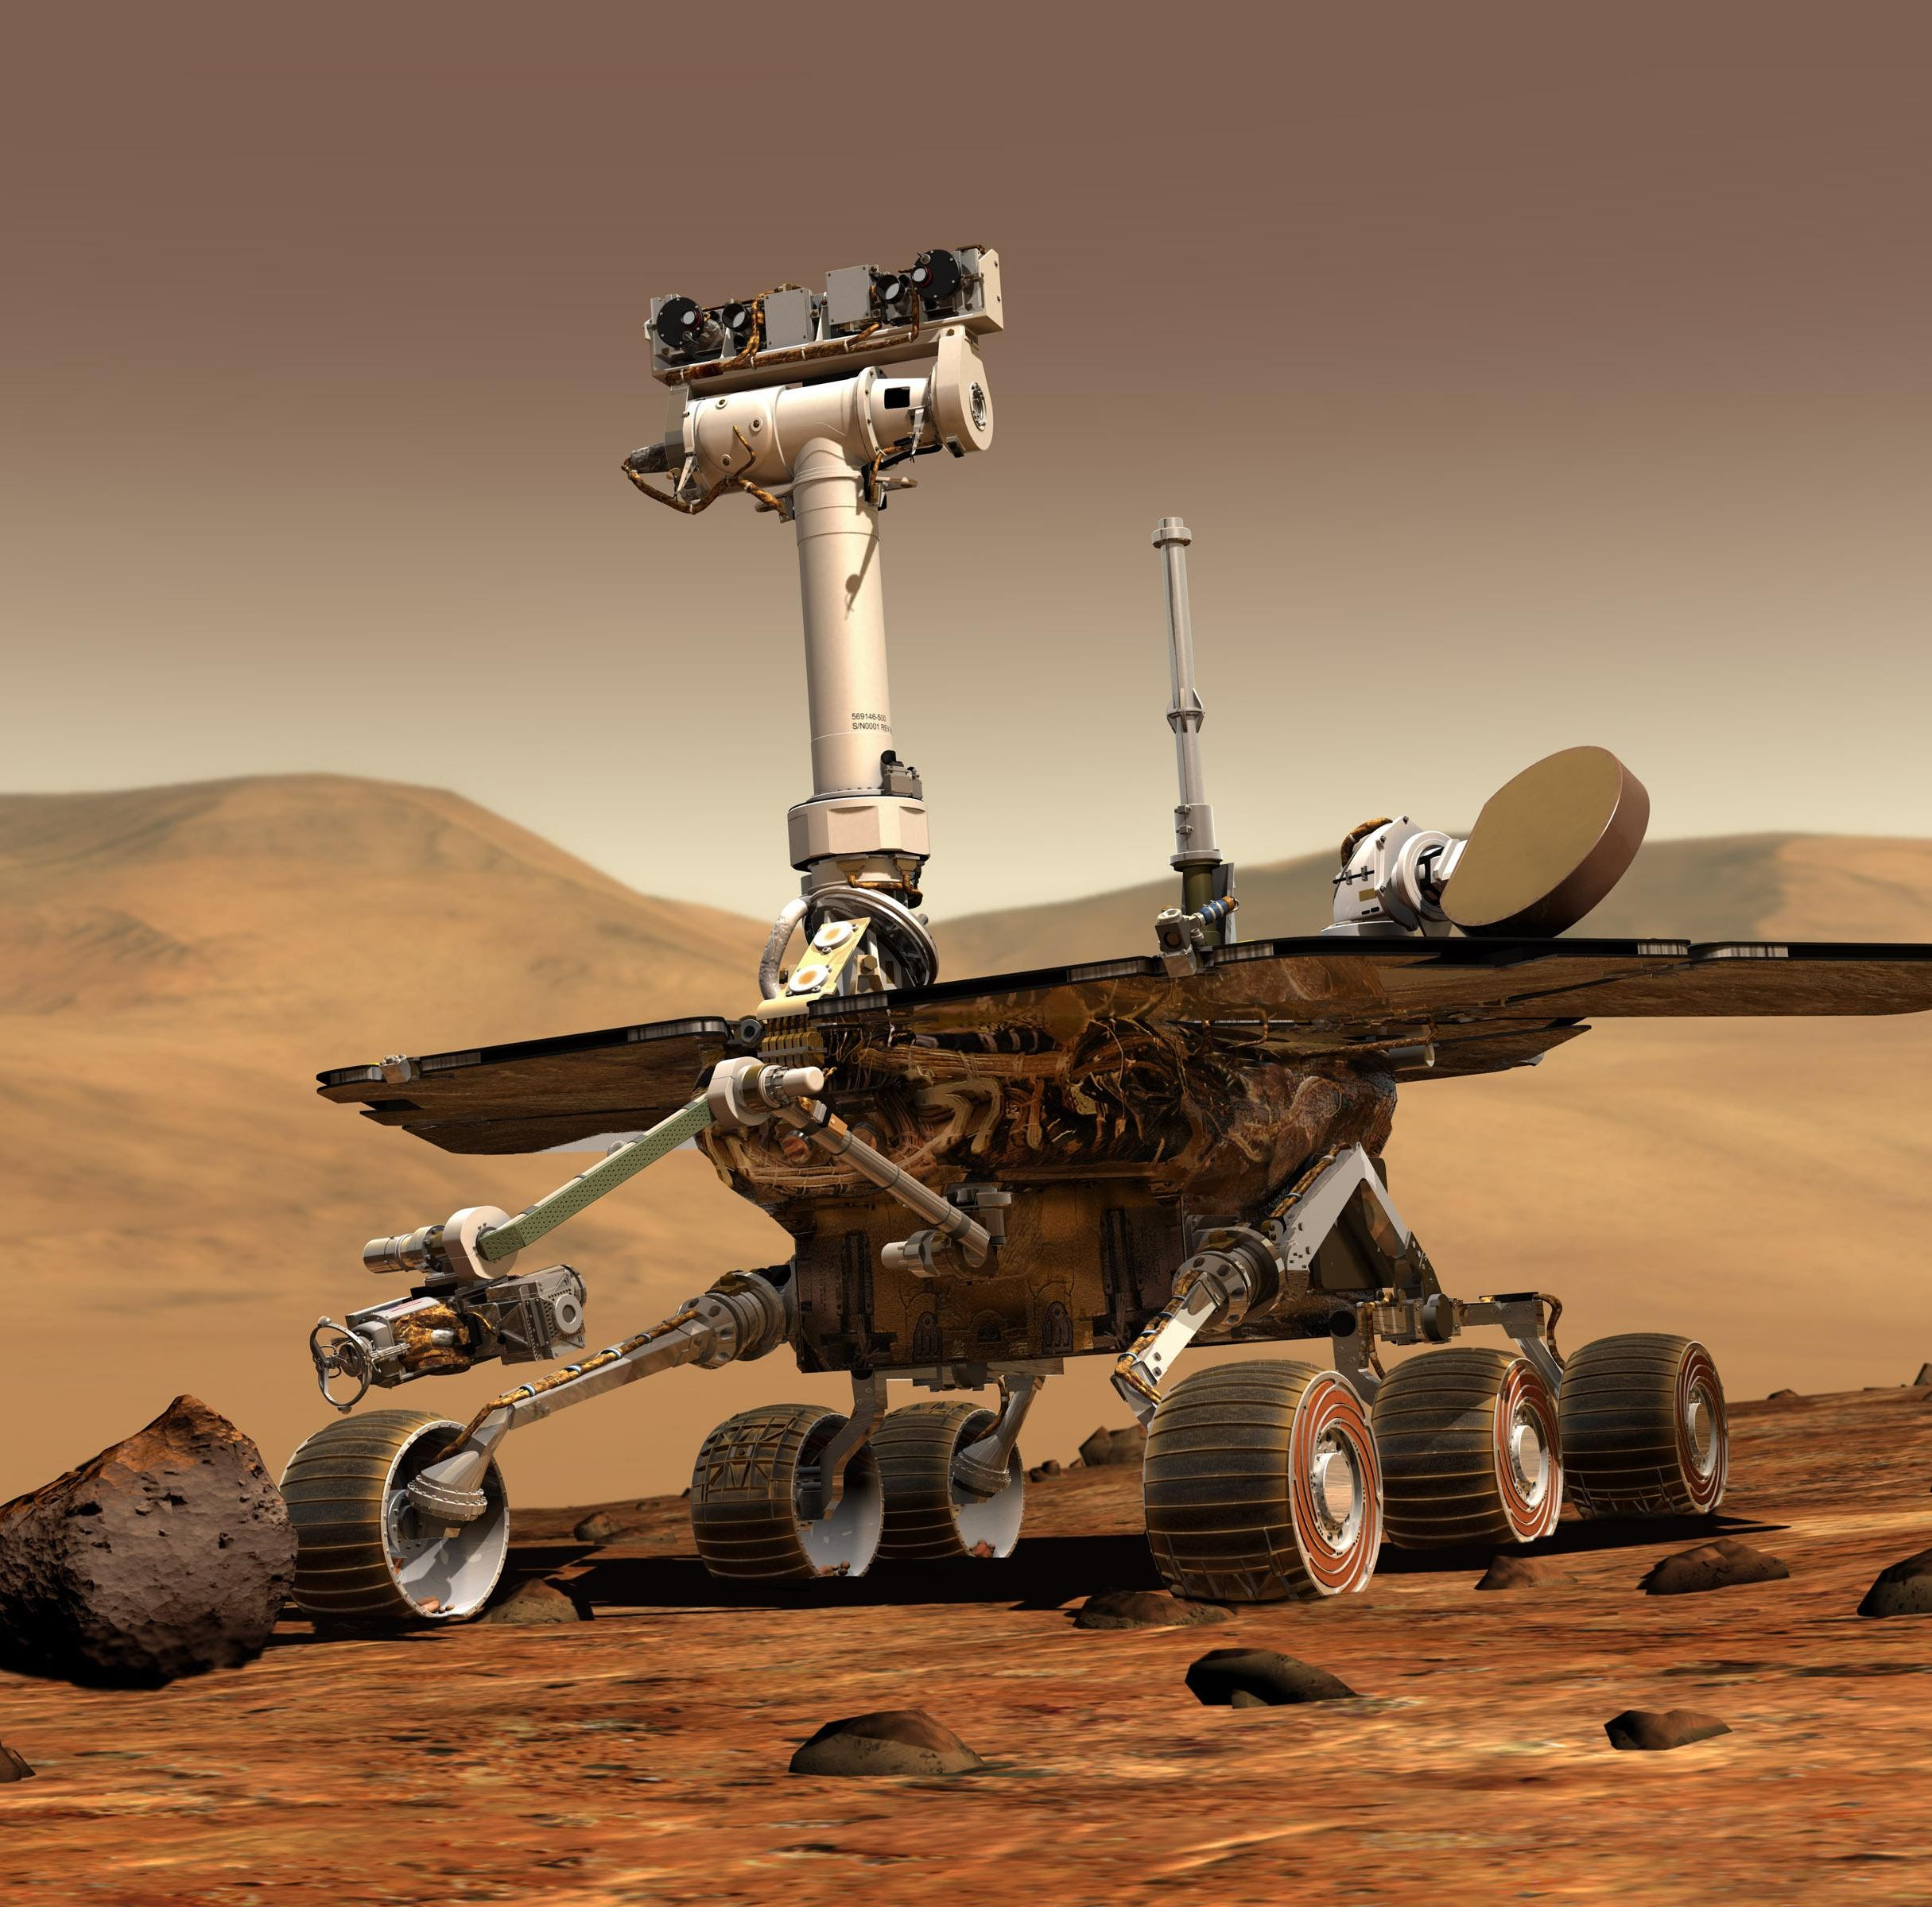 NASA's Rover Opportunity finally bites the dust